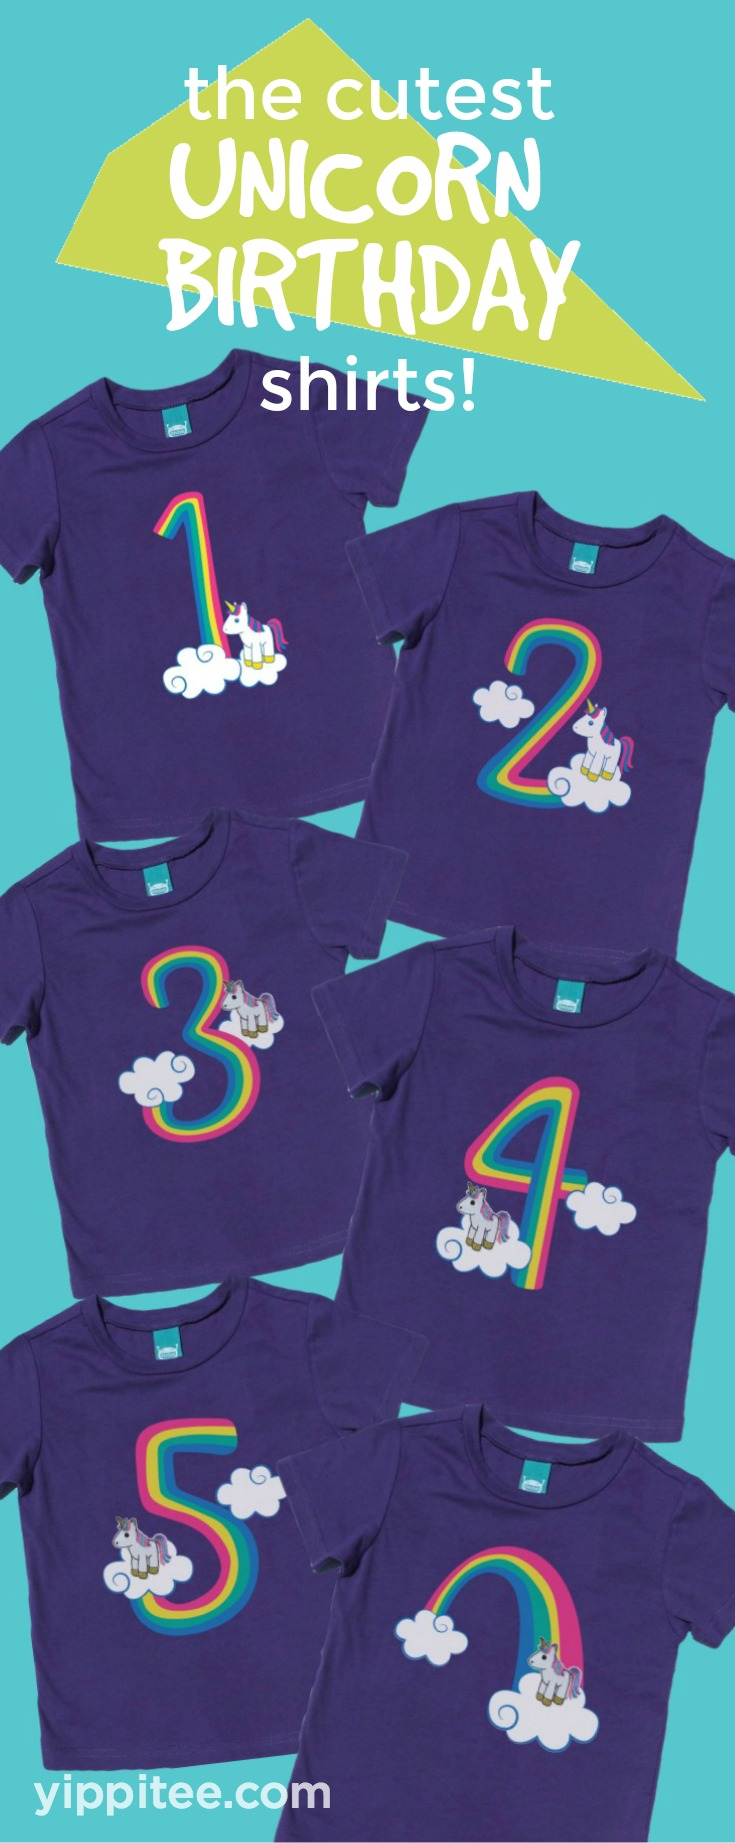 These adorable rainbow unicorn birthday shirts have finger puppets that snap on and off for play on-the-go! It's the perfect shirt for your little one's unicorn birthday party. // kids birthday shirts, birthday girl shirt, birthday boy shirt, toddler birthday shirt #birthdayshirt #kidsbirthdayshirts #birthdaygirl #birthdayboy #toddlerbirthday #unicornparty #unicornbirthday #rainbowparty #rainbowbirthday #unicornshirt #rainbowshirt #rainbowunicorn